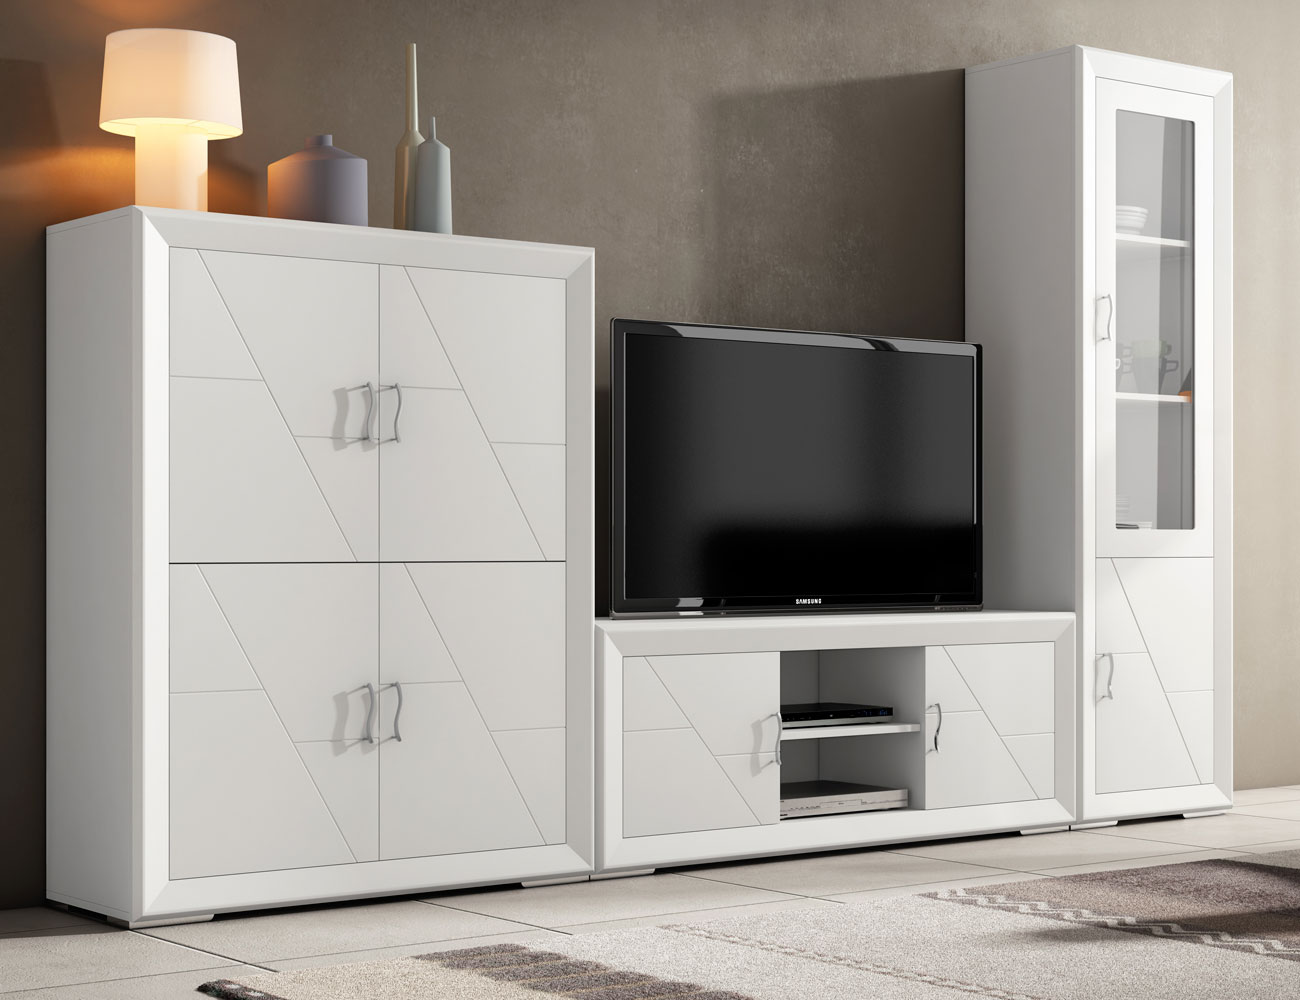 Mesa extensible en madera en color blanco lacado 8028 - Mueble salon blanco ...